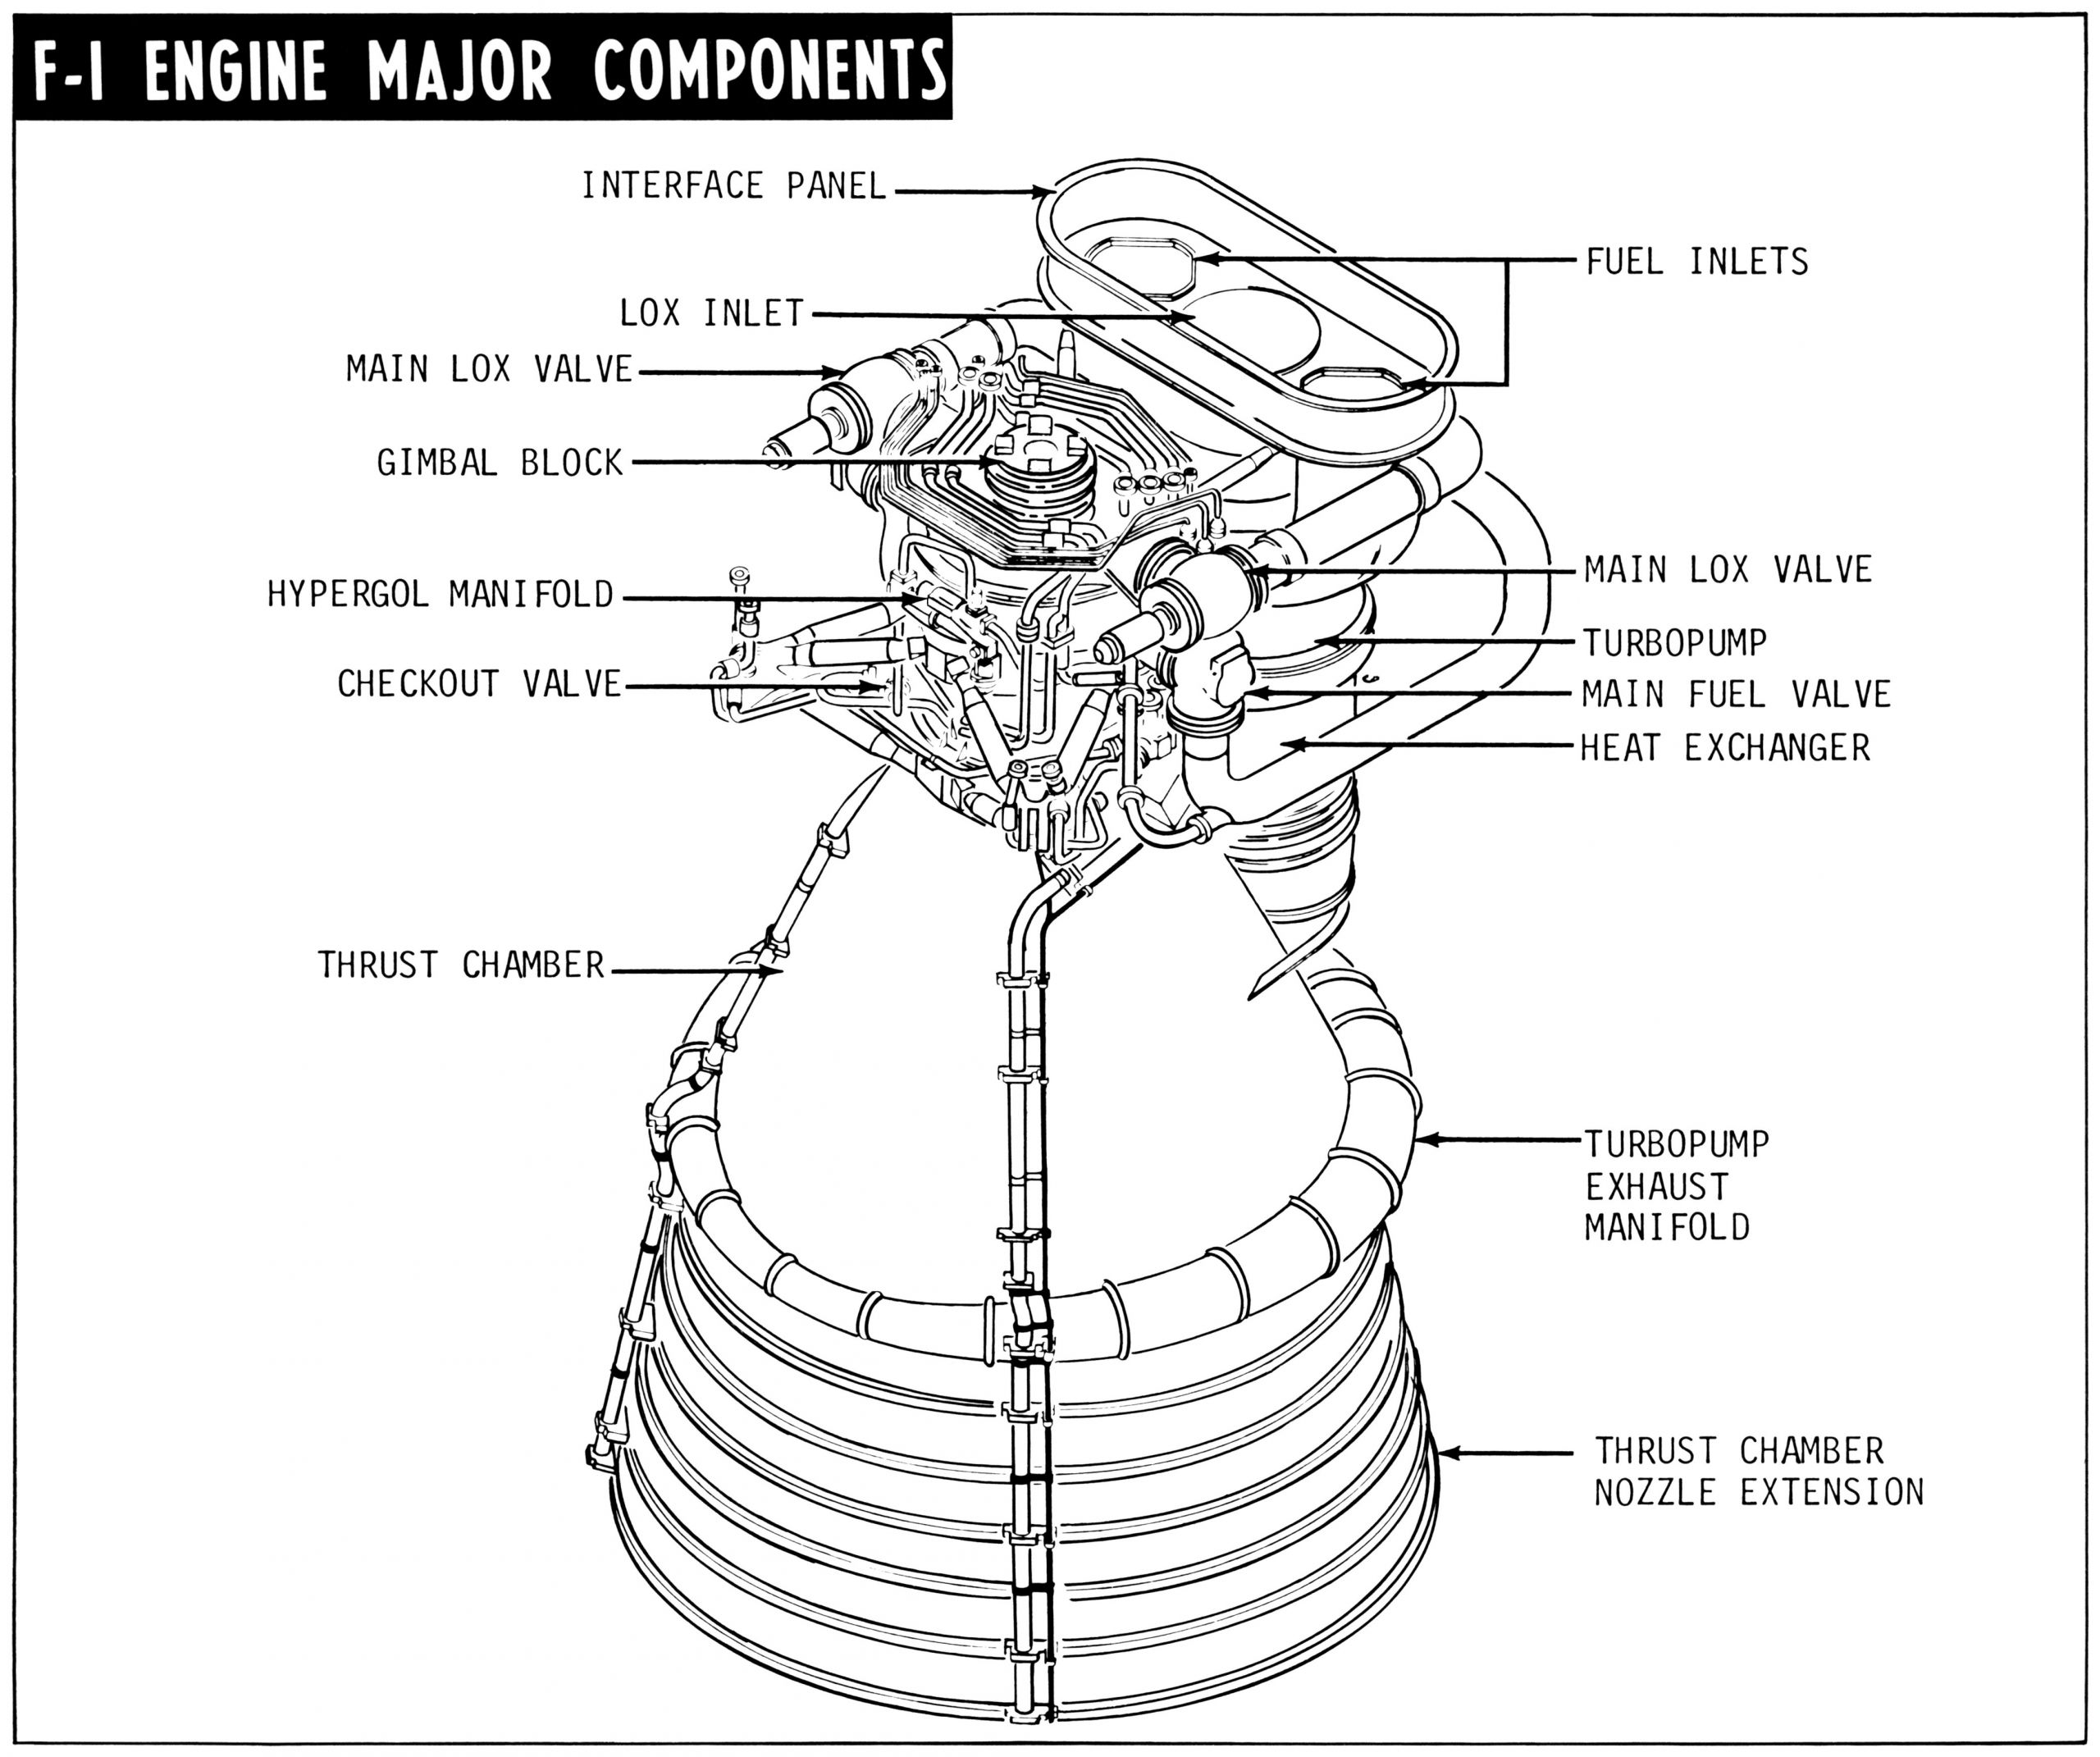 Rapper Rocket Engine Diagram F 1 with Callouts Of Rapper Rocket Engine Diagram